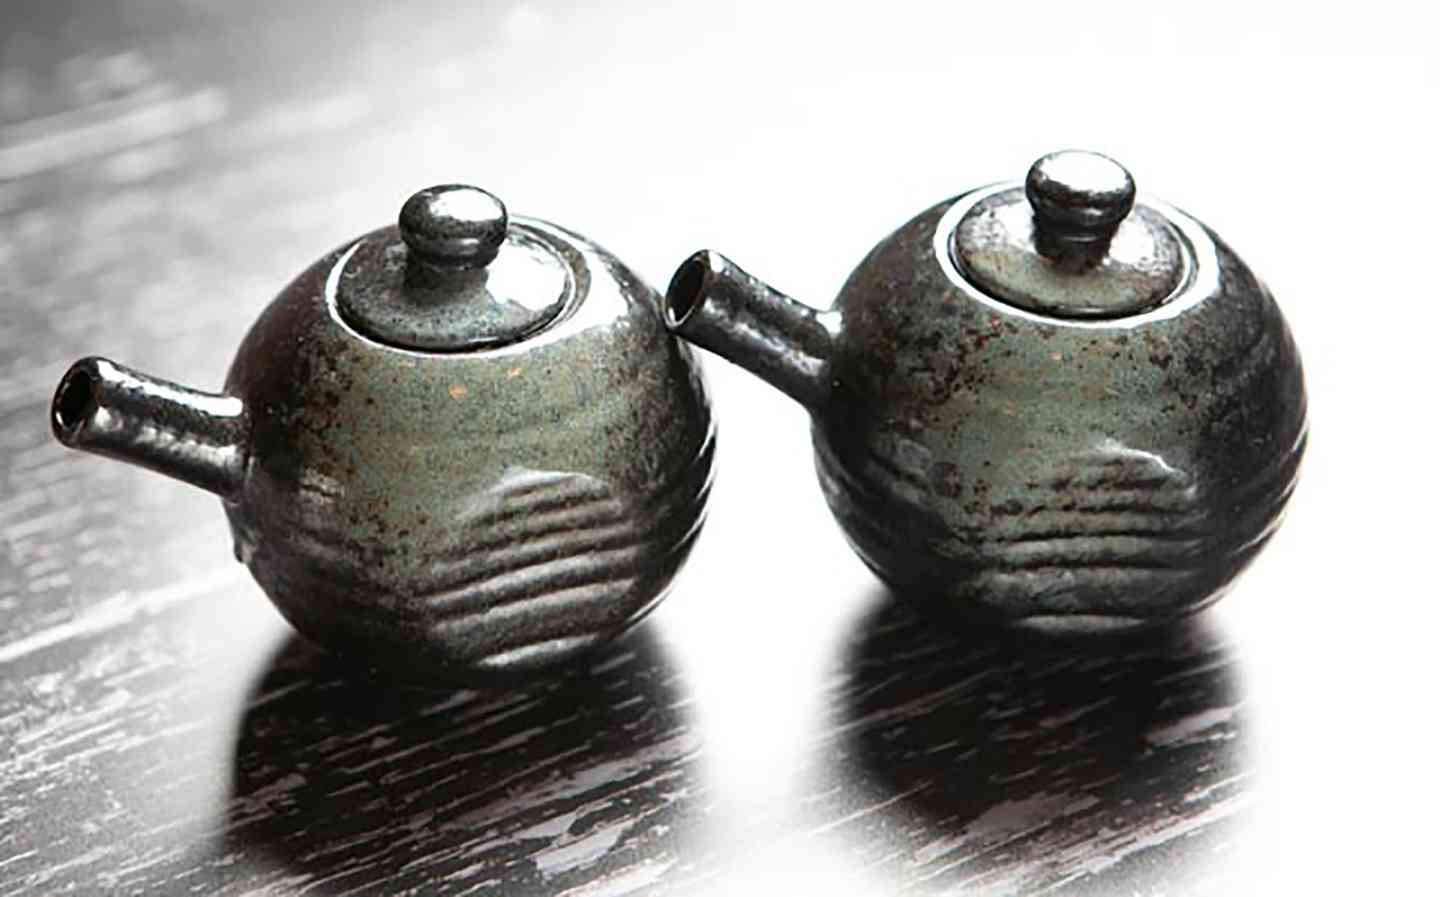 Two small kettles